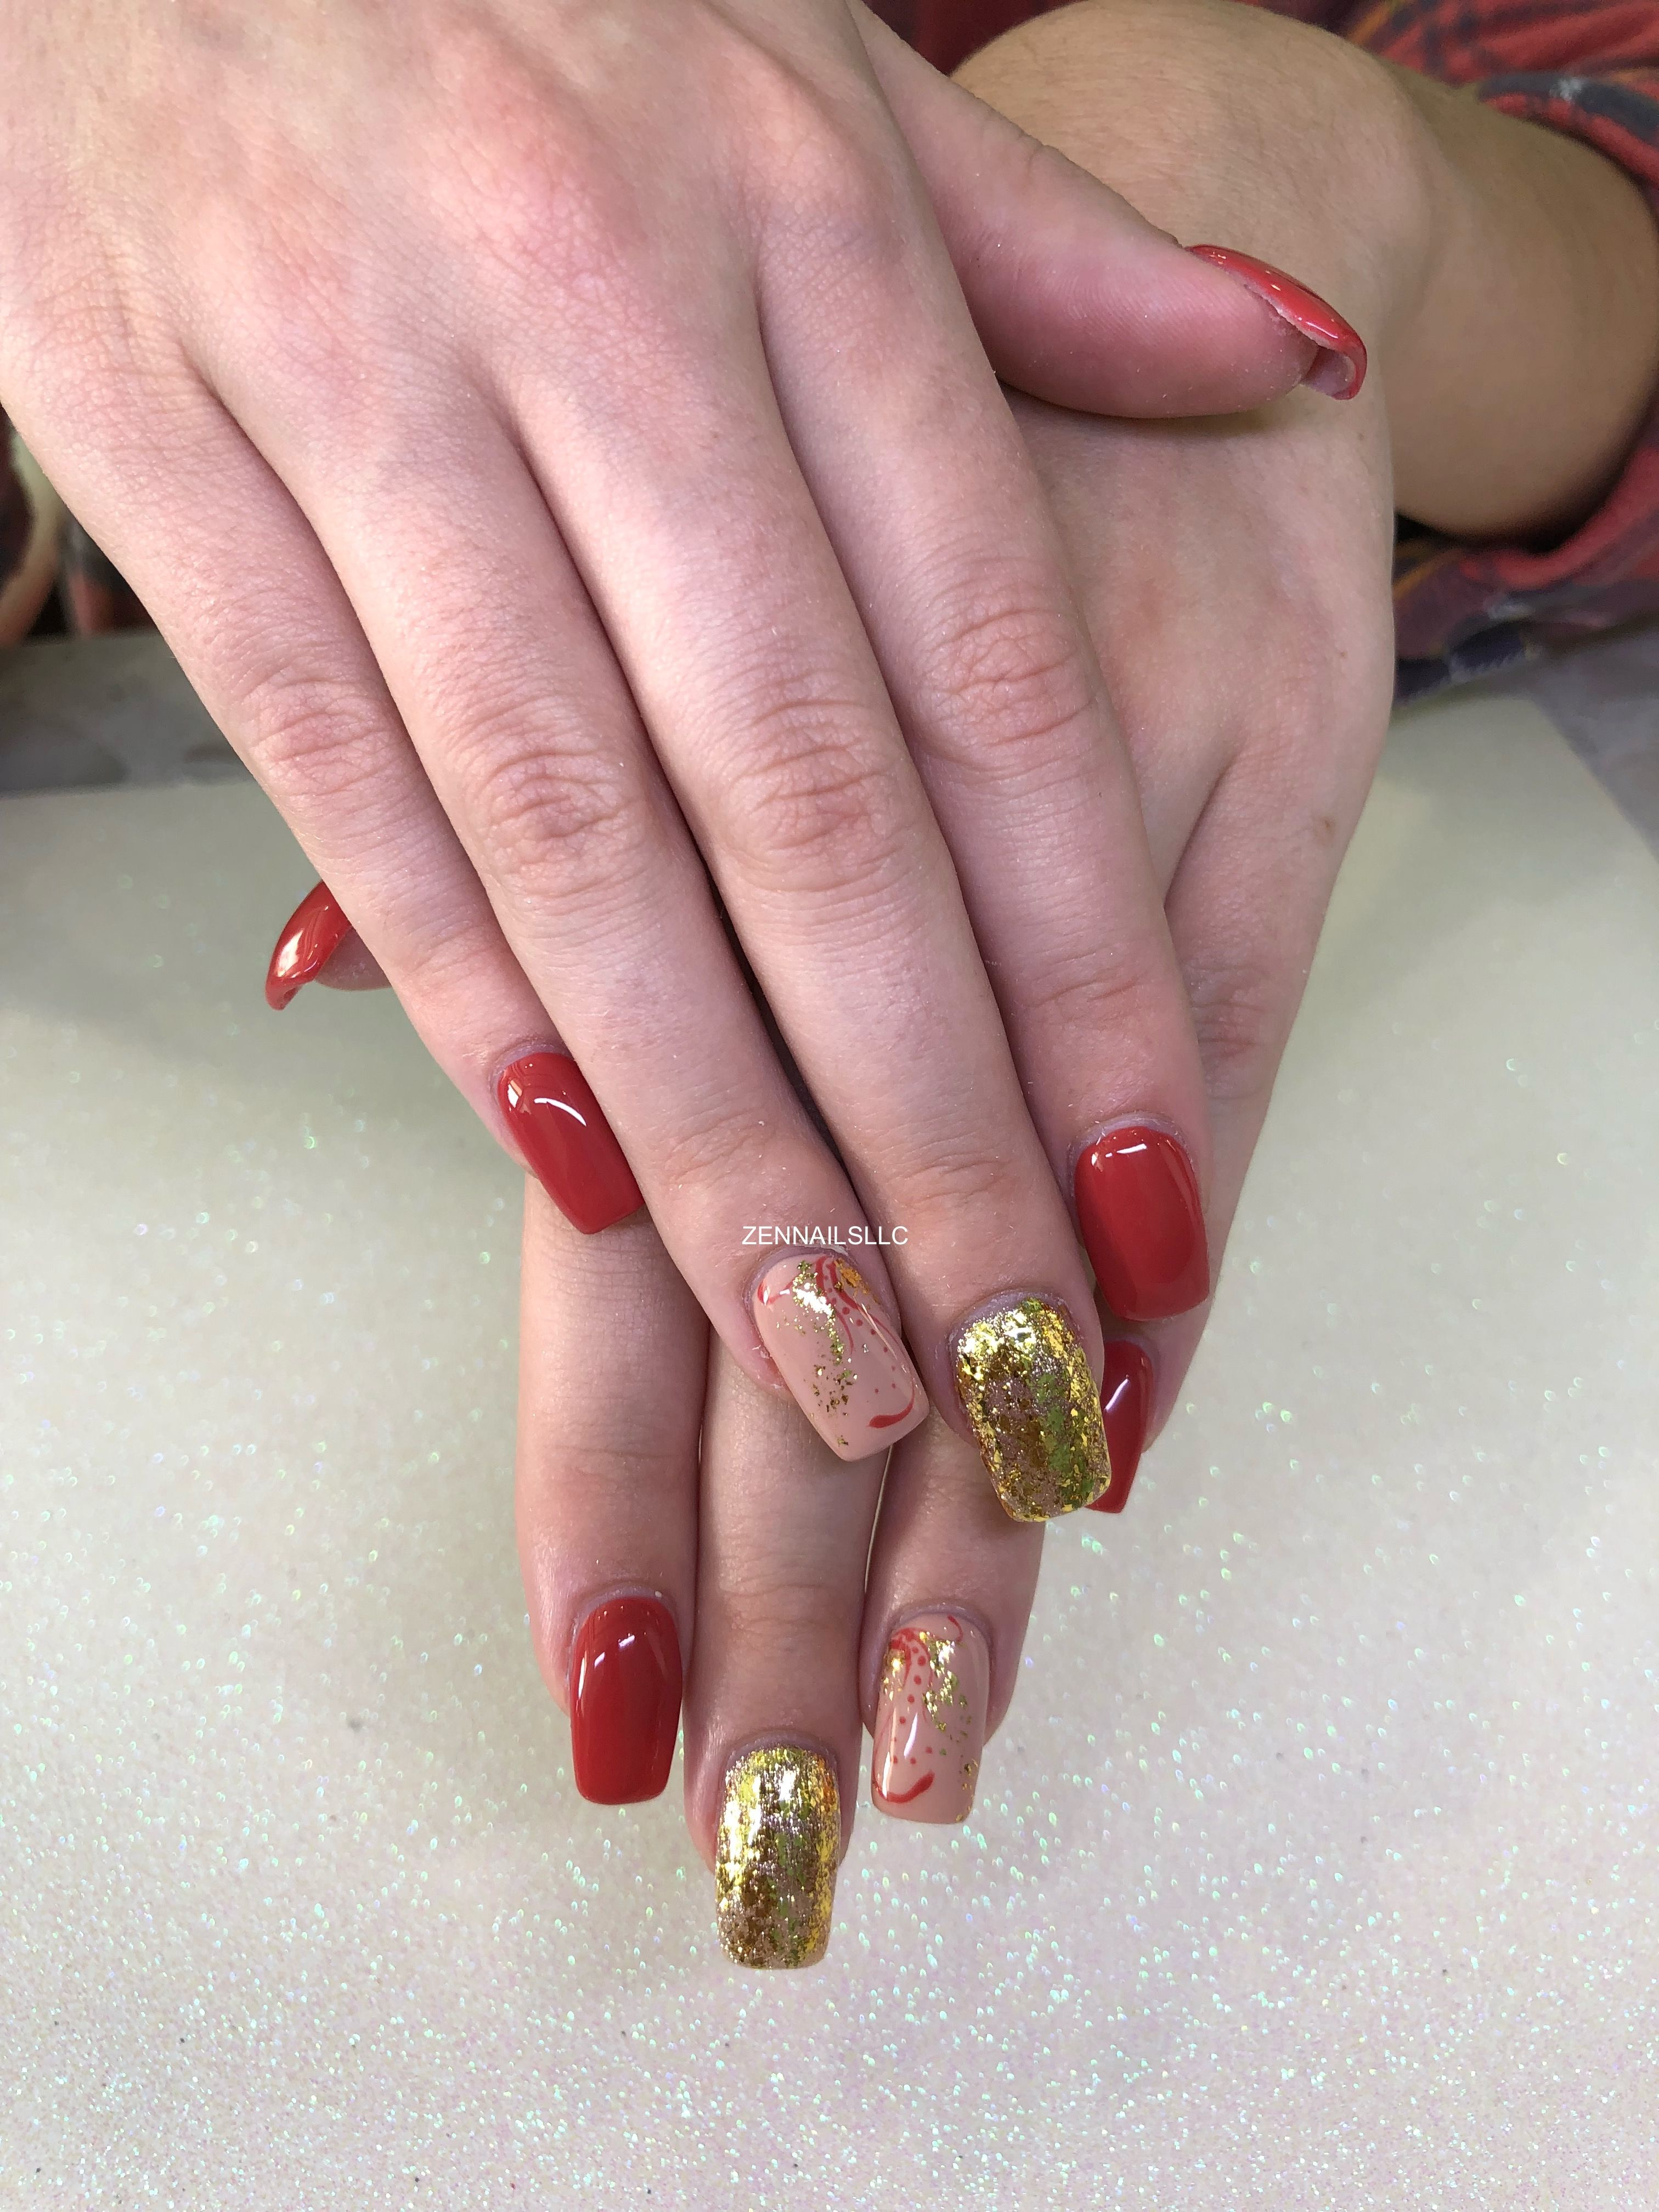 Zen Nails LLC Florence, KY | Beautiful nails, Nails, Class ...